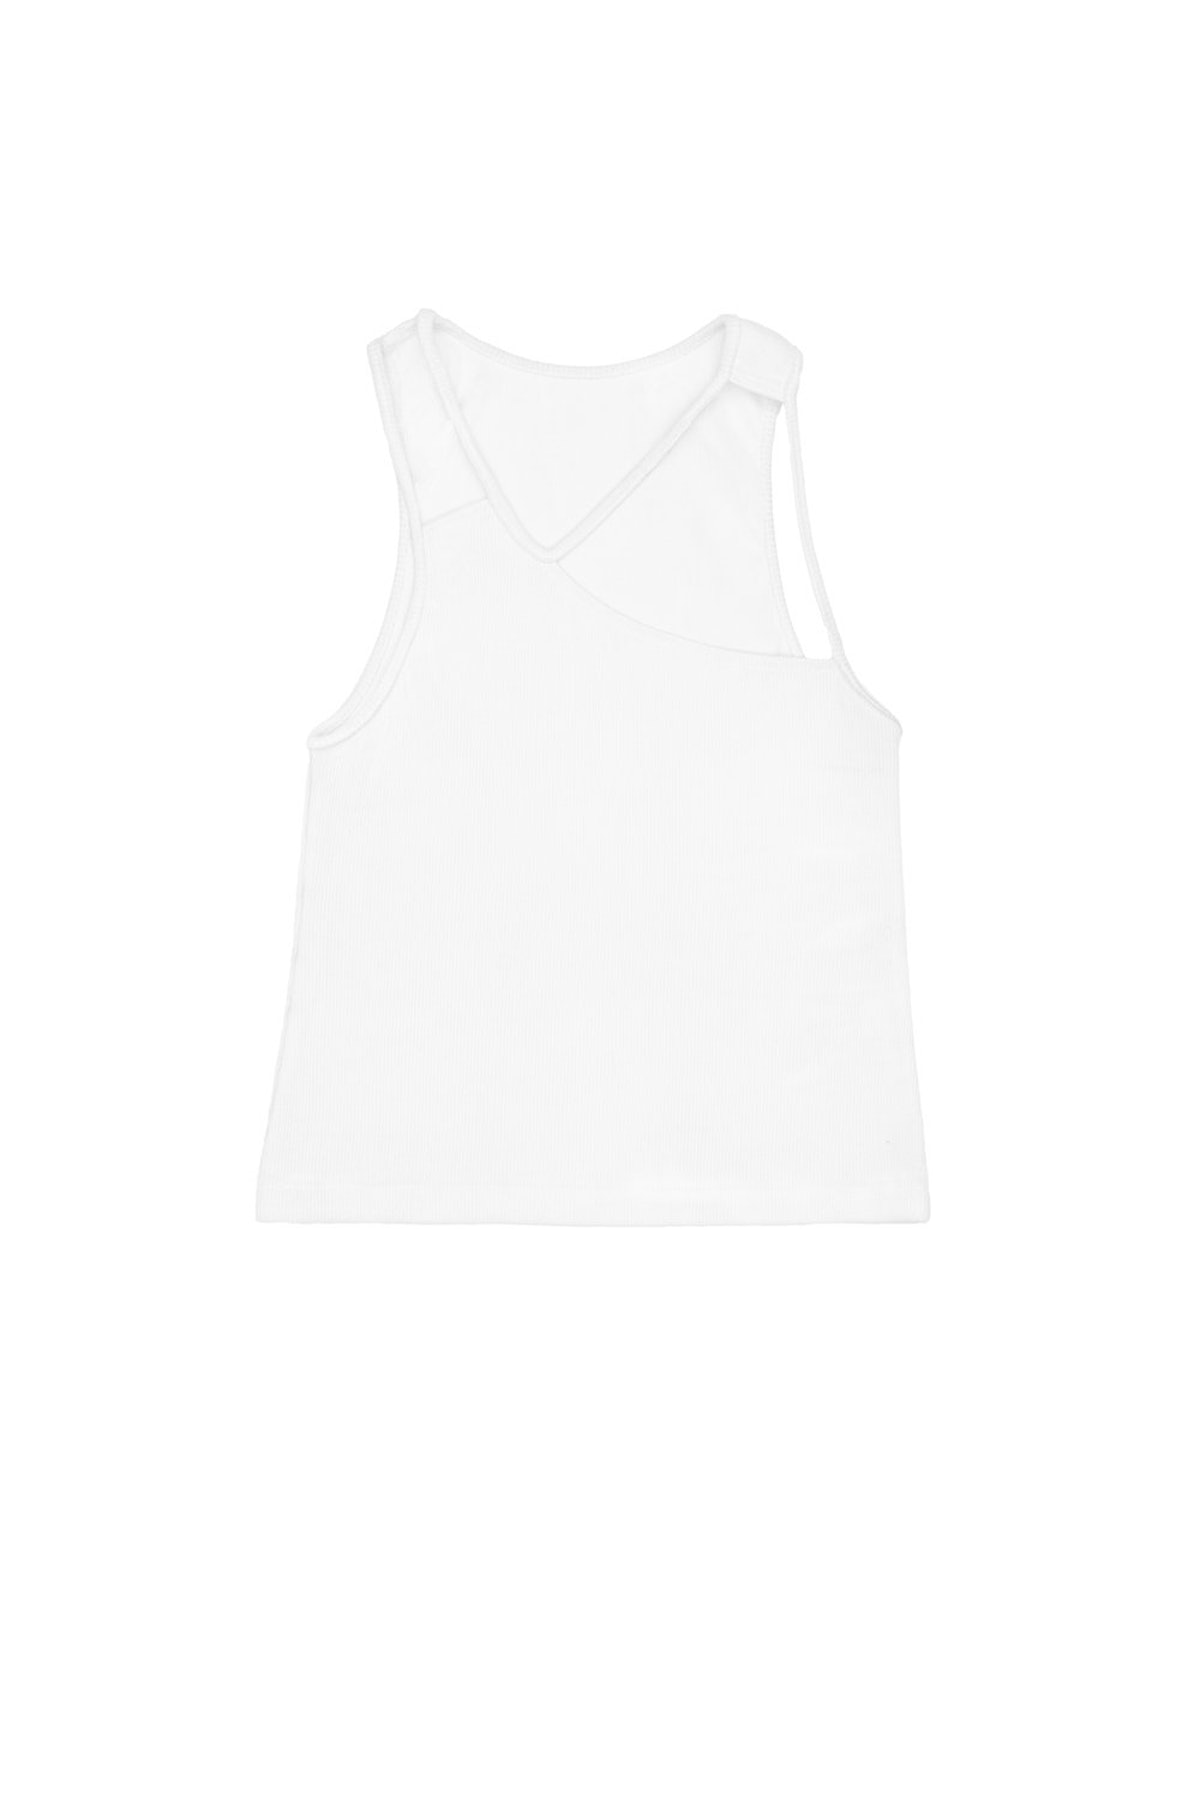 """K.ngsley White """"FIST"""" Ribbed Tank"""